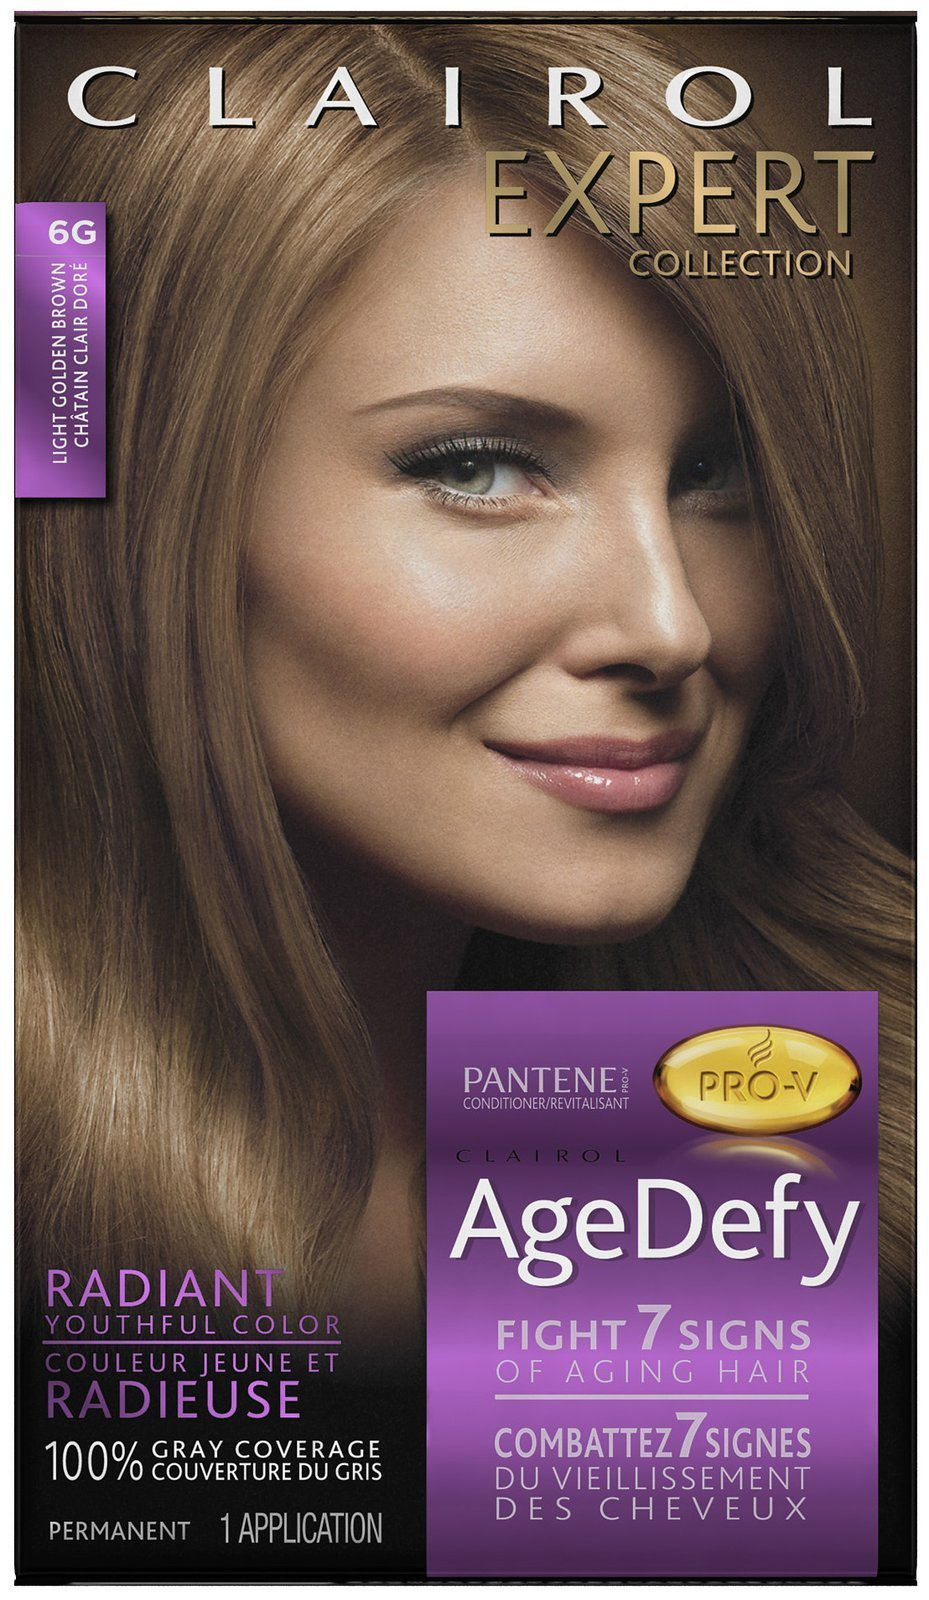 The Best Clairol Expert Age Defy Hair Color Only 3 99 At Publix Pictures